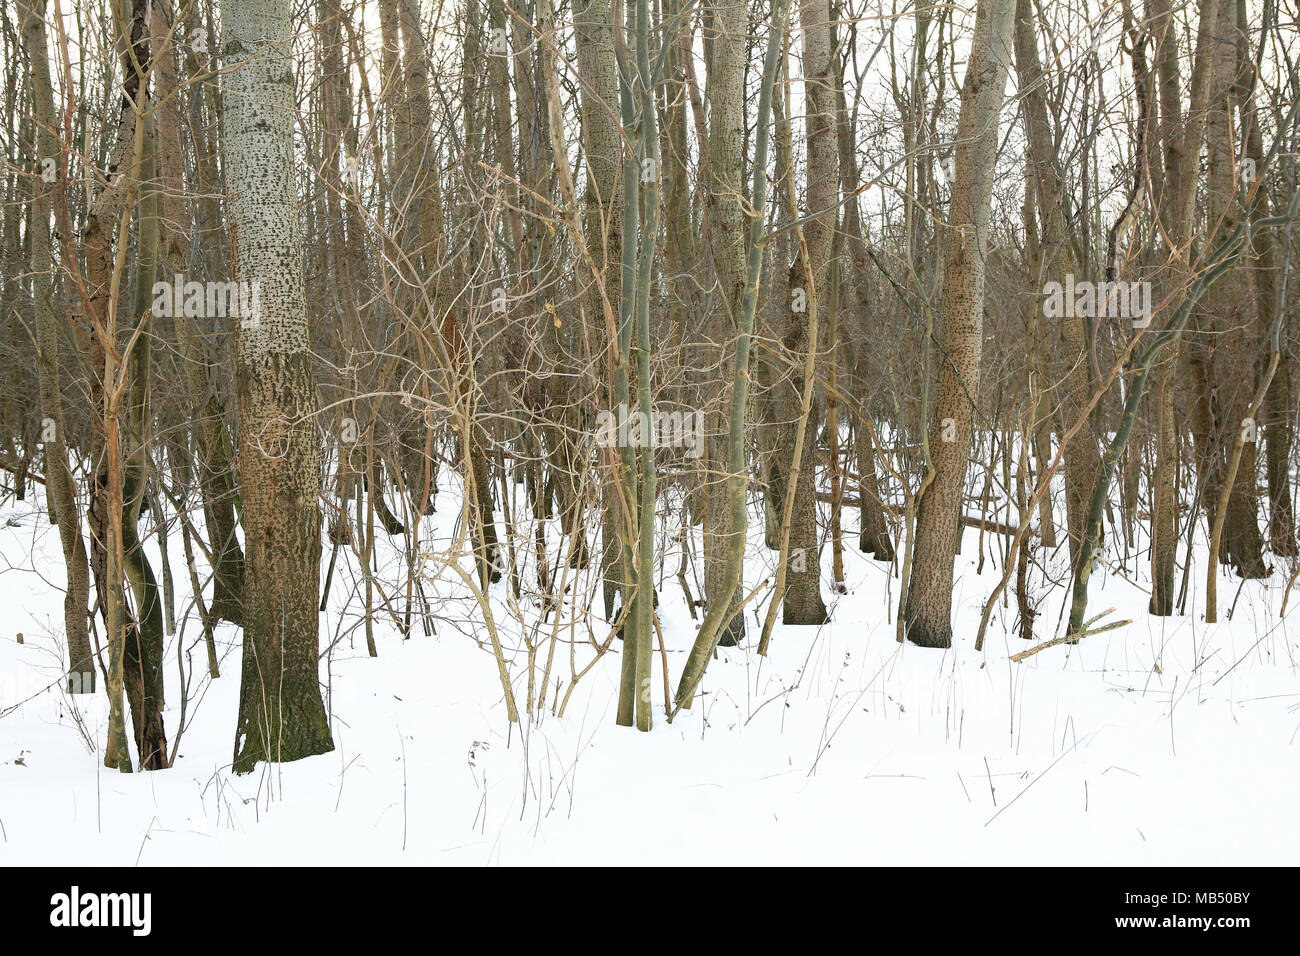 Leafless bare trees in the snow - Stock Image